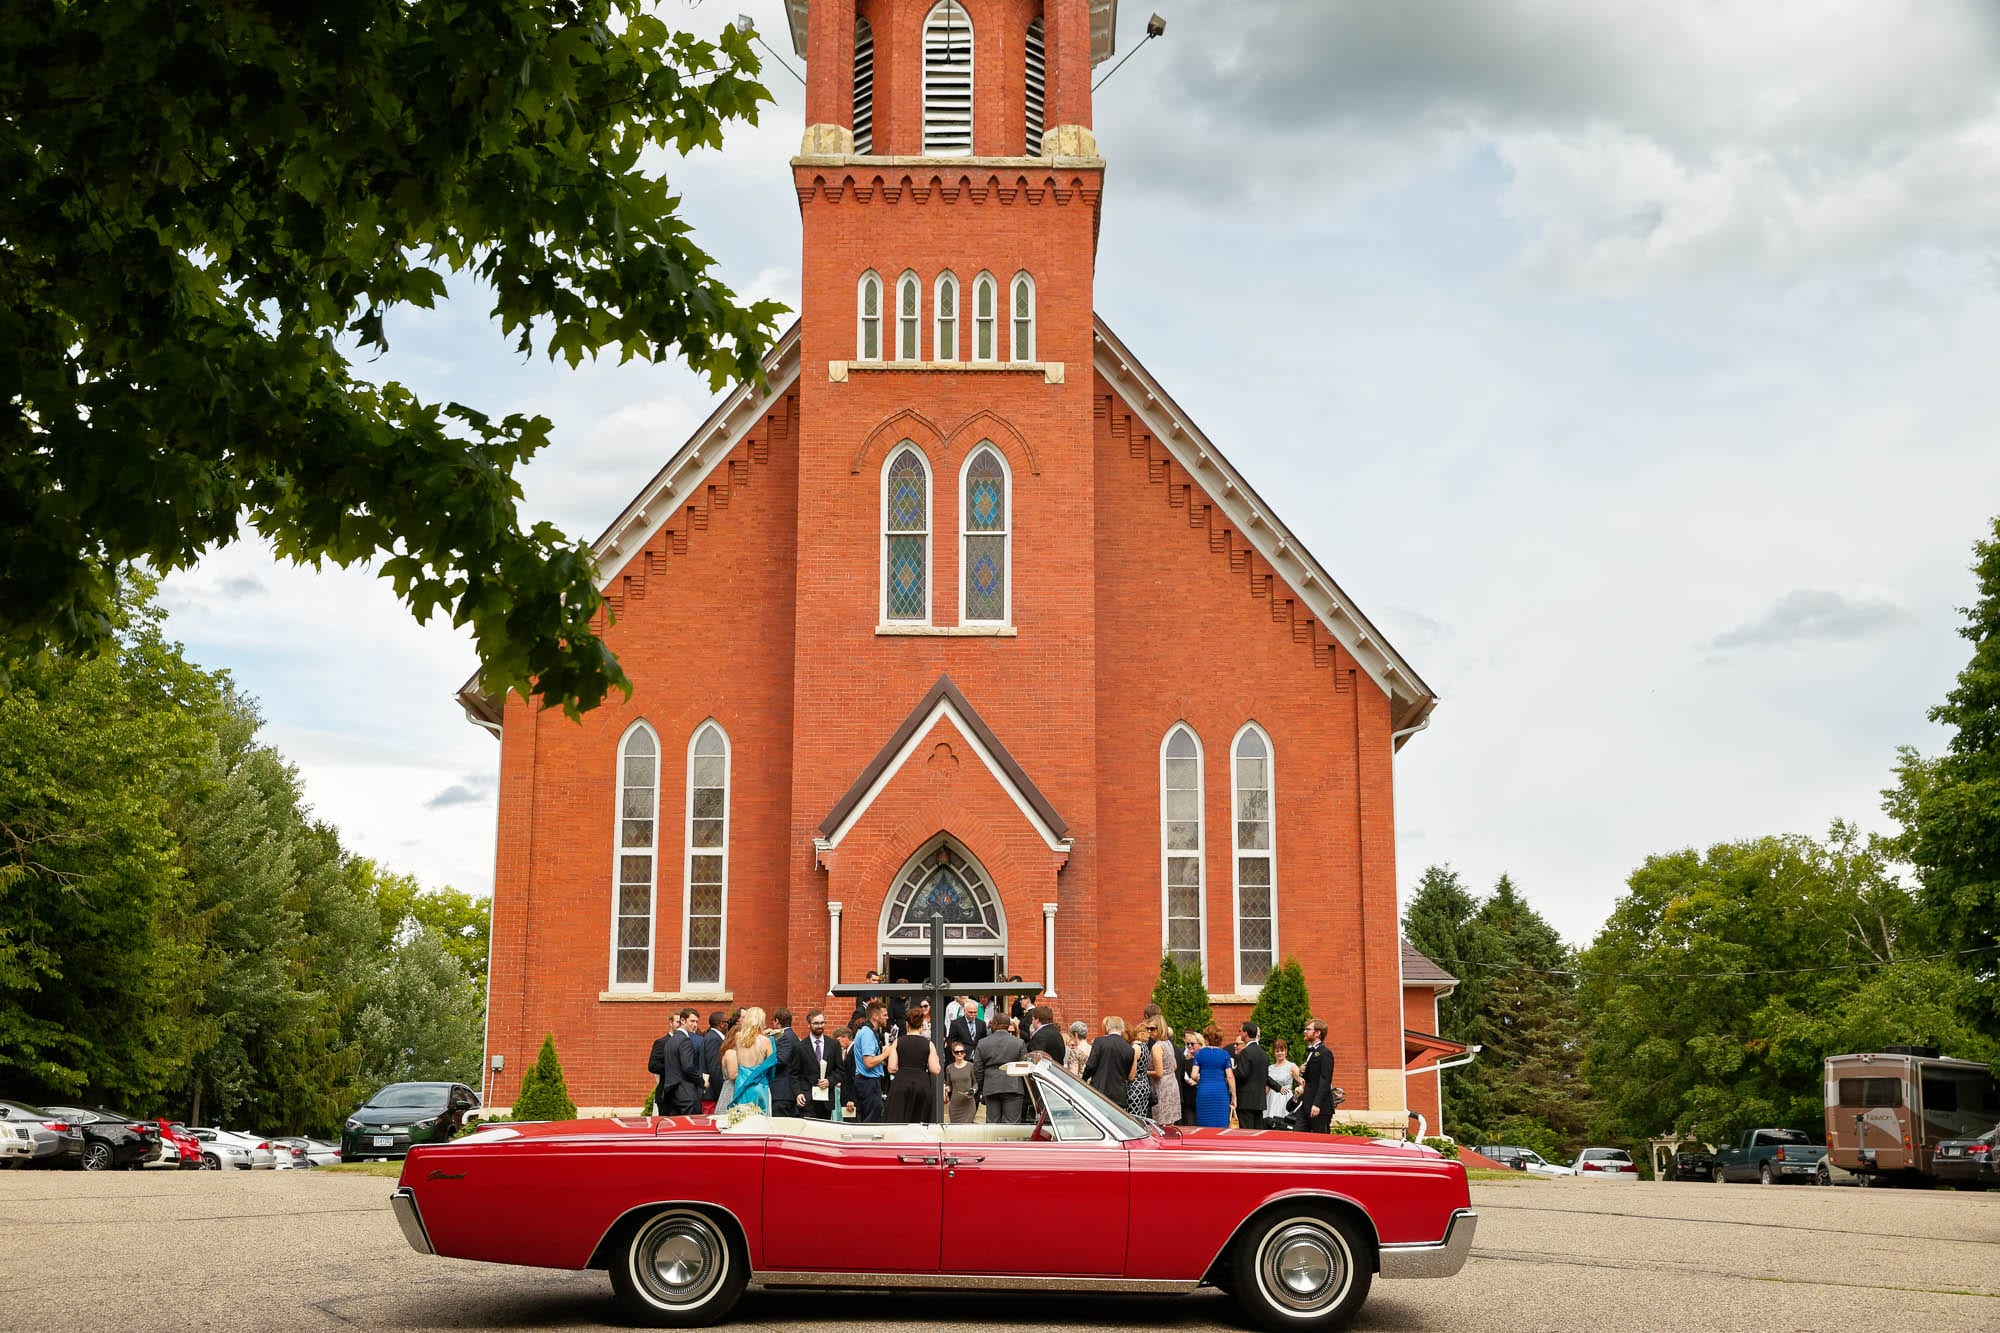 -red-american-car-in-front-of-a-red-brick-church